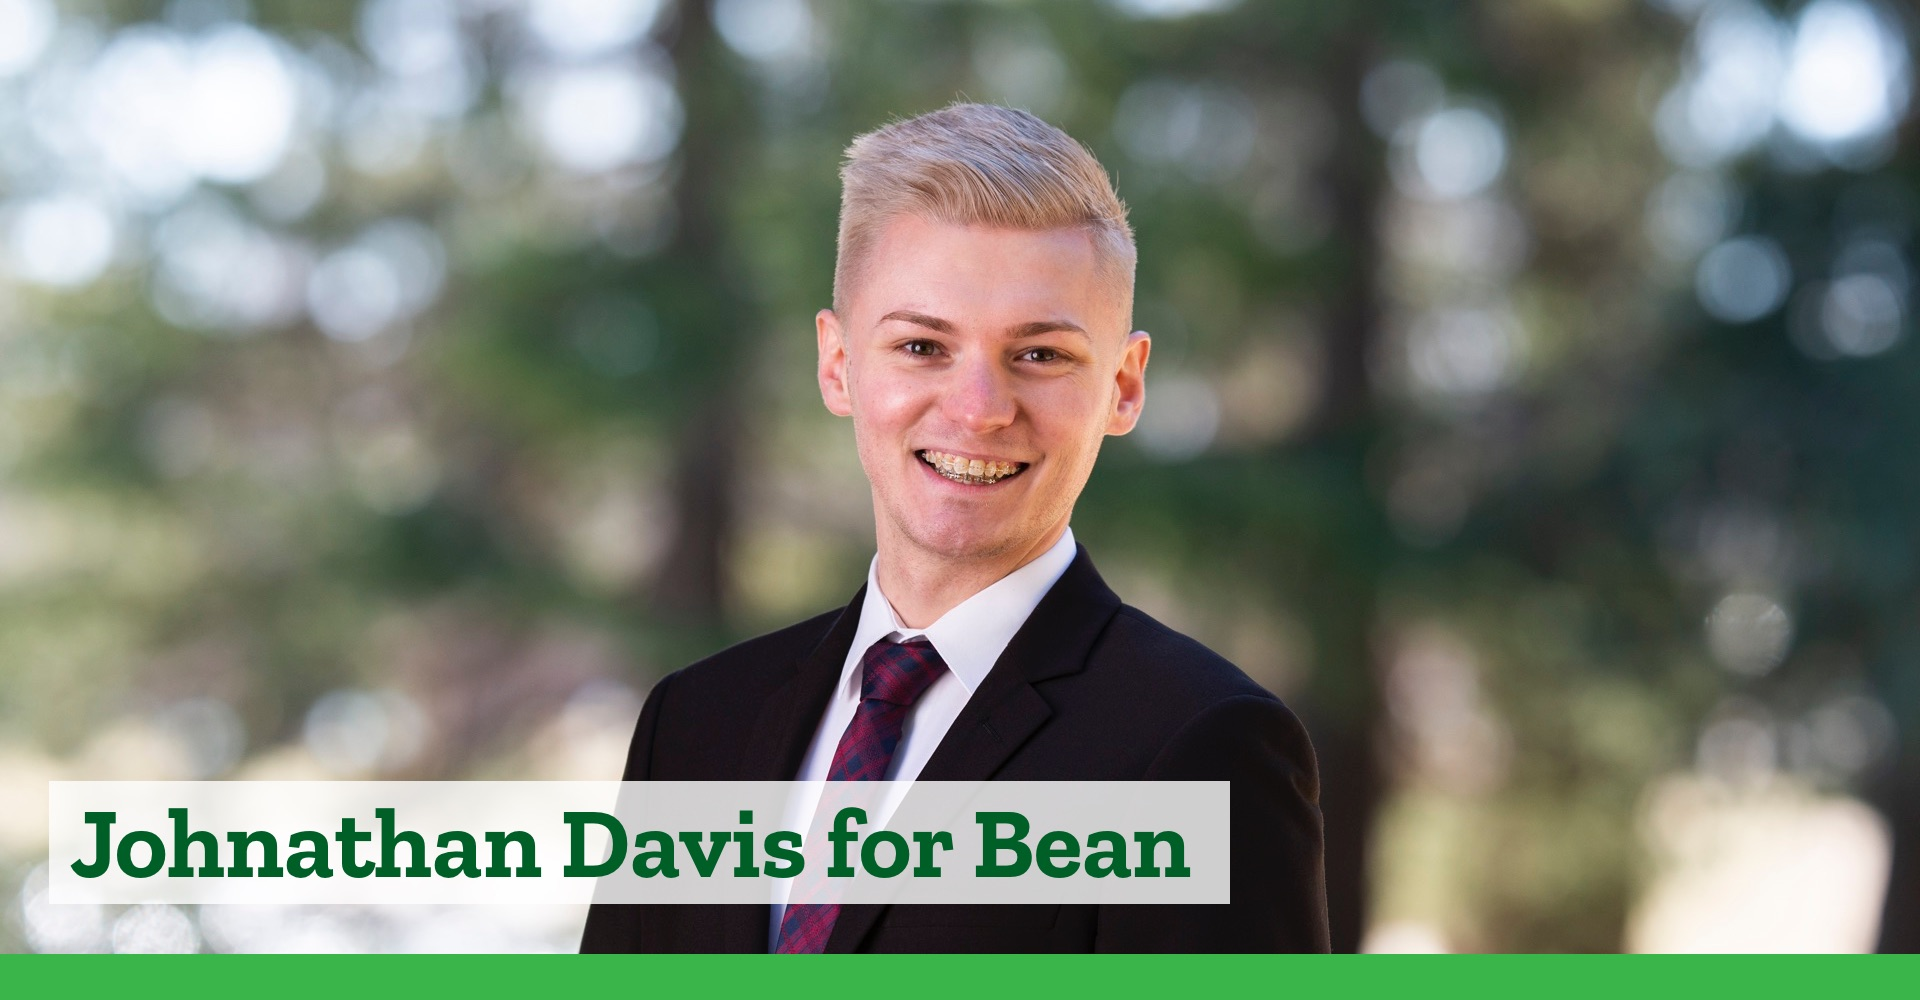 Johnathan Davis for Bean